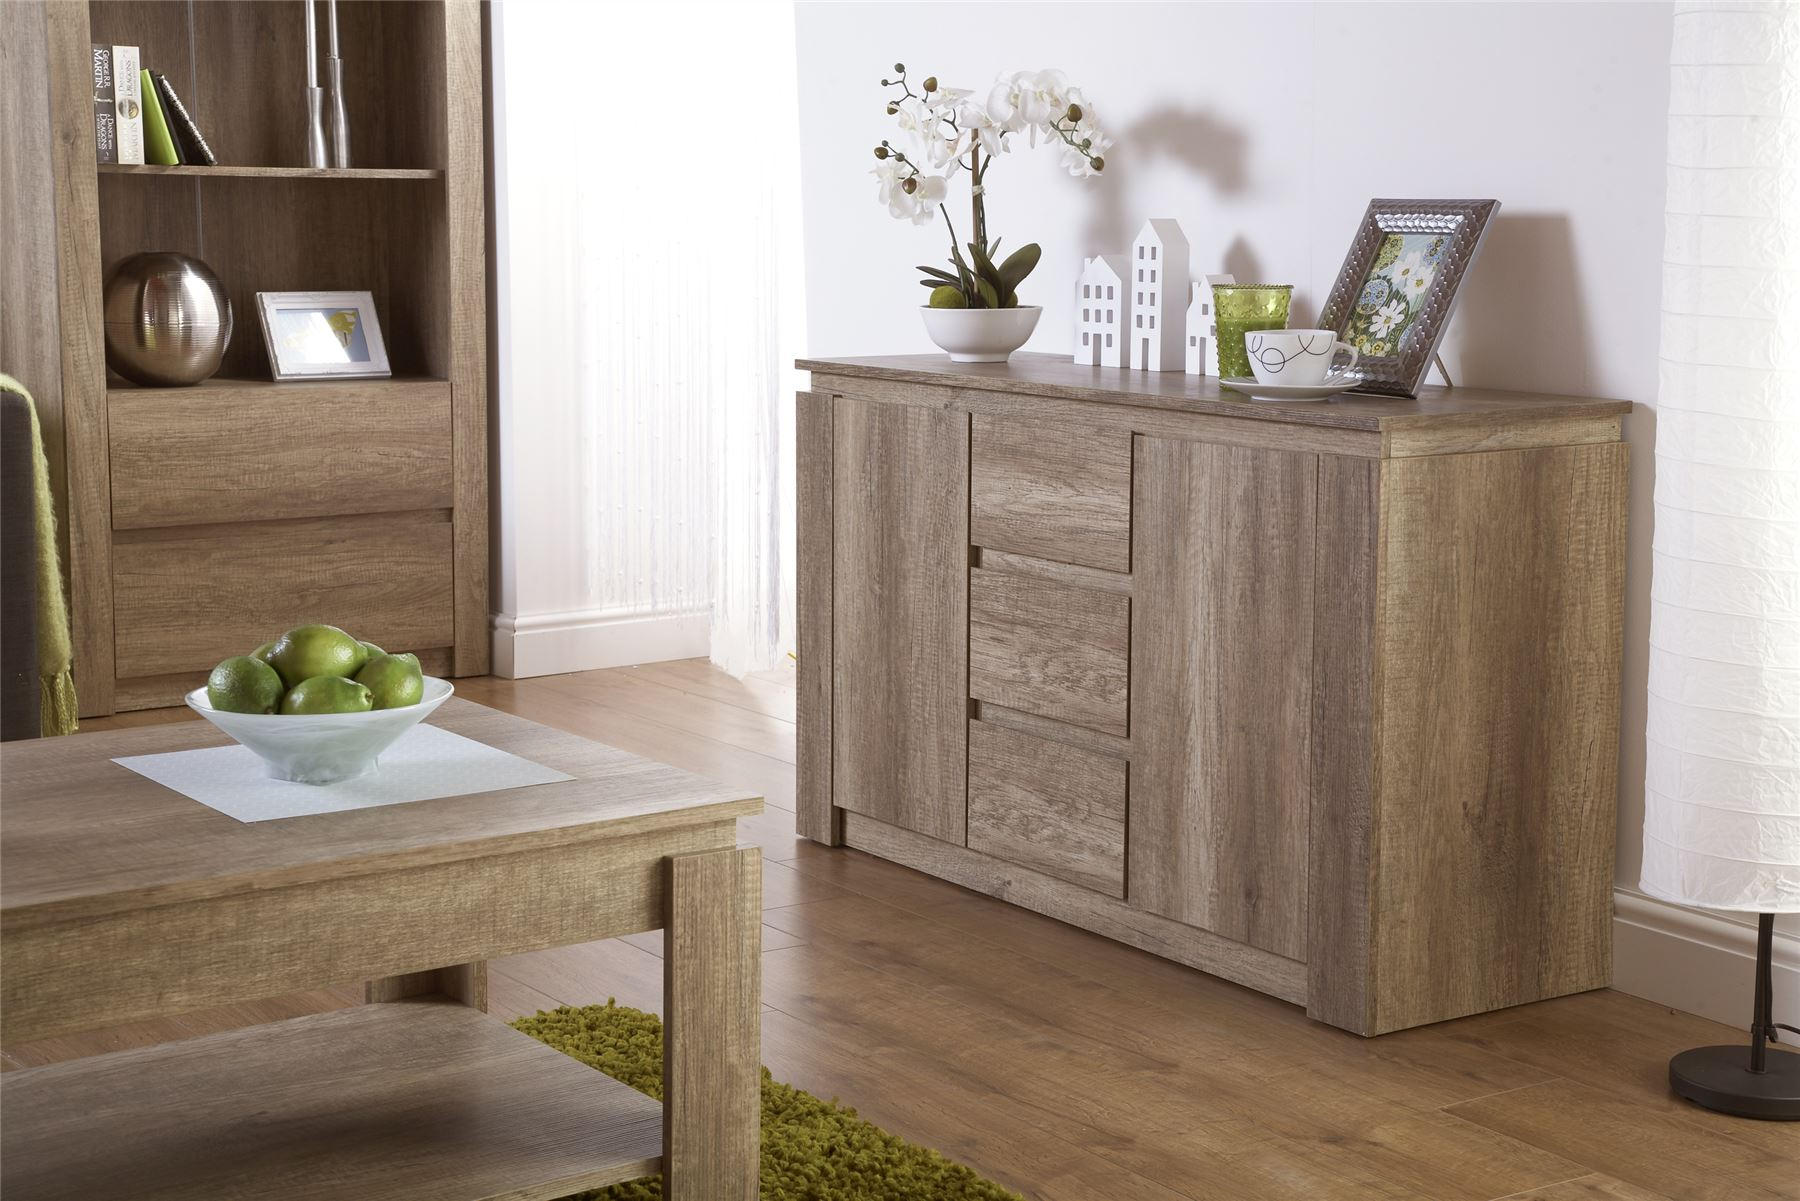 Details about Canyon Grey Oak Contemporary Living Room Furniture Coffee /  Lamp Table Sideboard